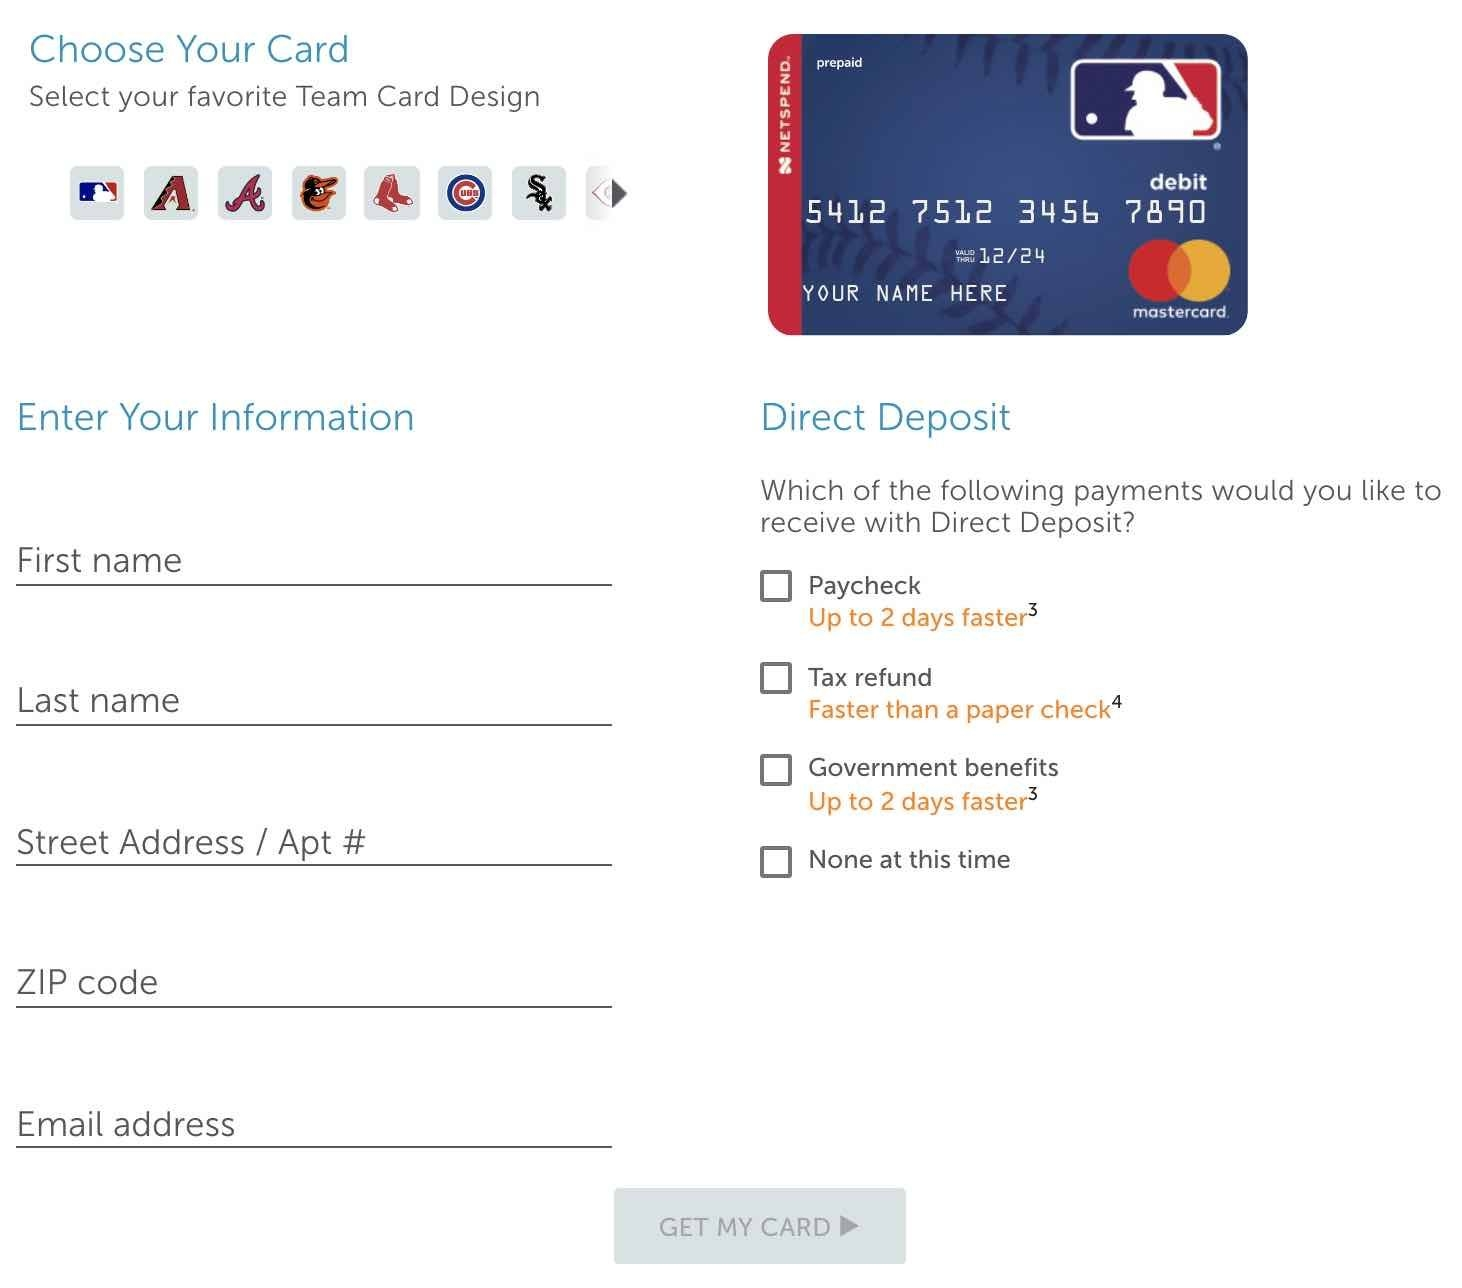 Netspend Mastercard Mlb Prepaid Debit Card Review 2020